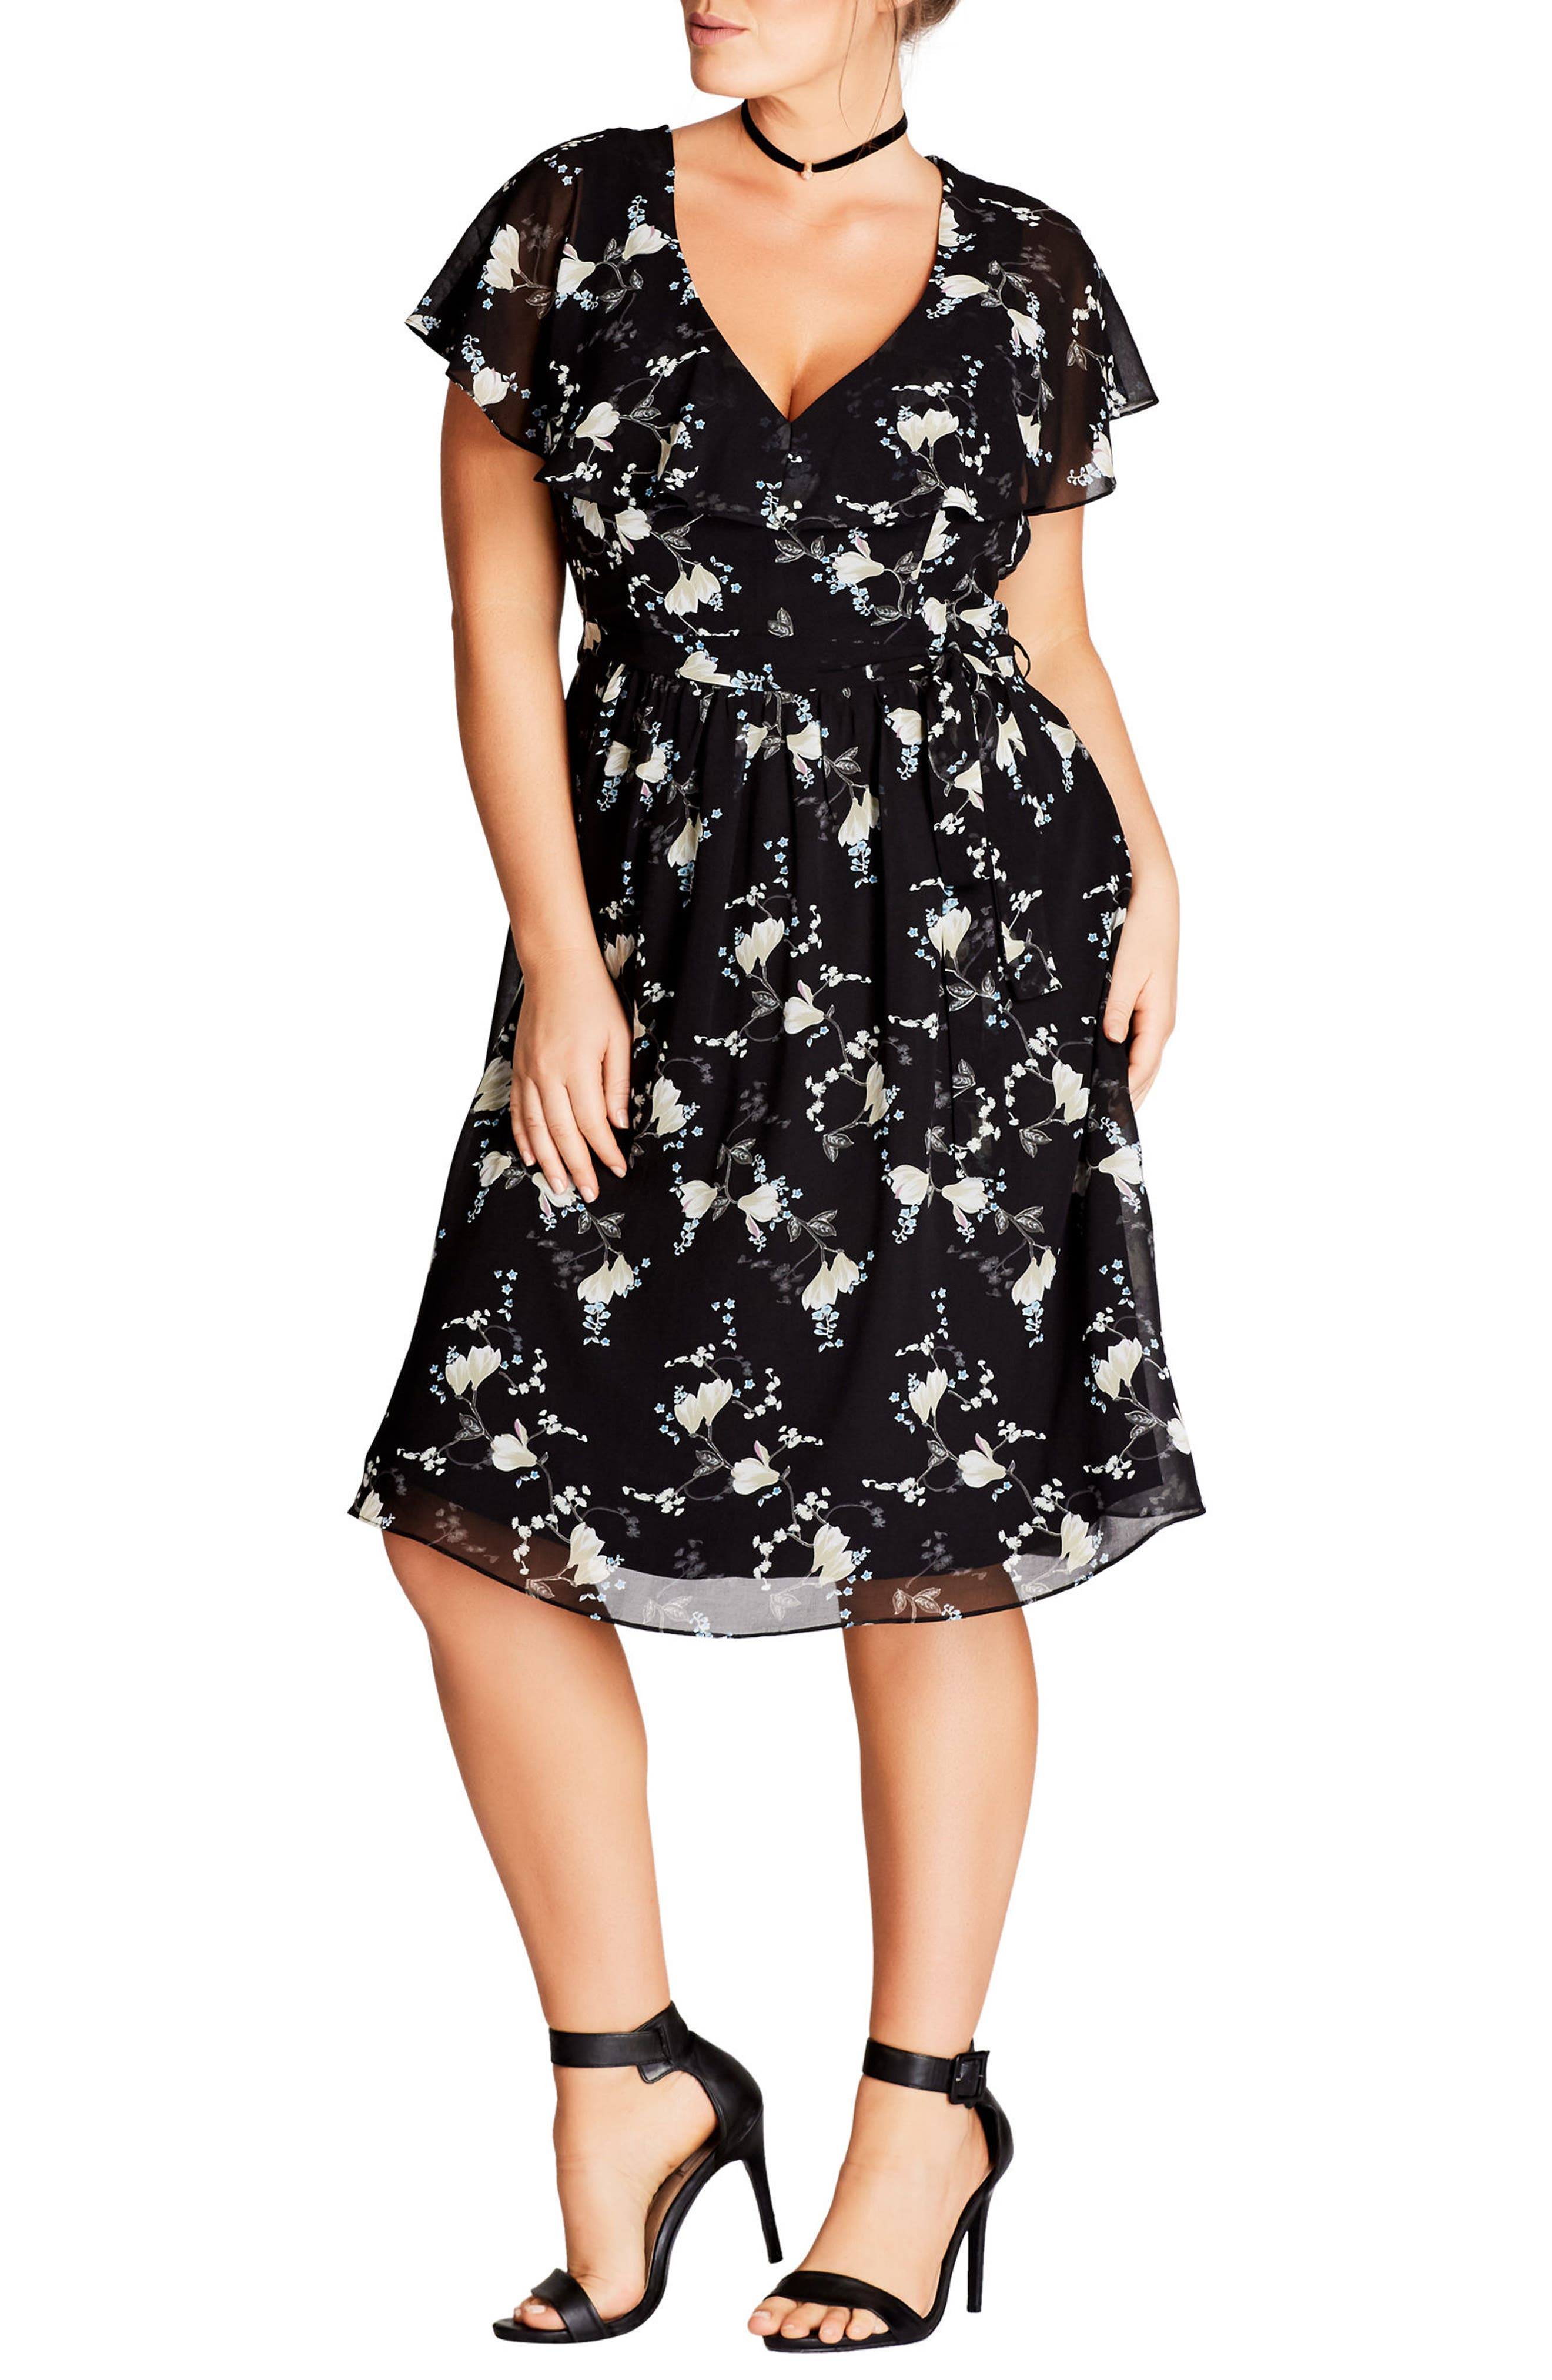 Alternate Image 1 Selected - City Chic Climbing Blossom Dress (Plus Size)